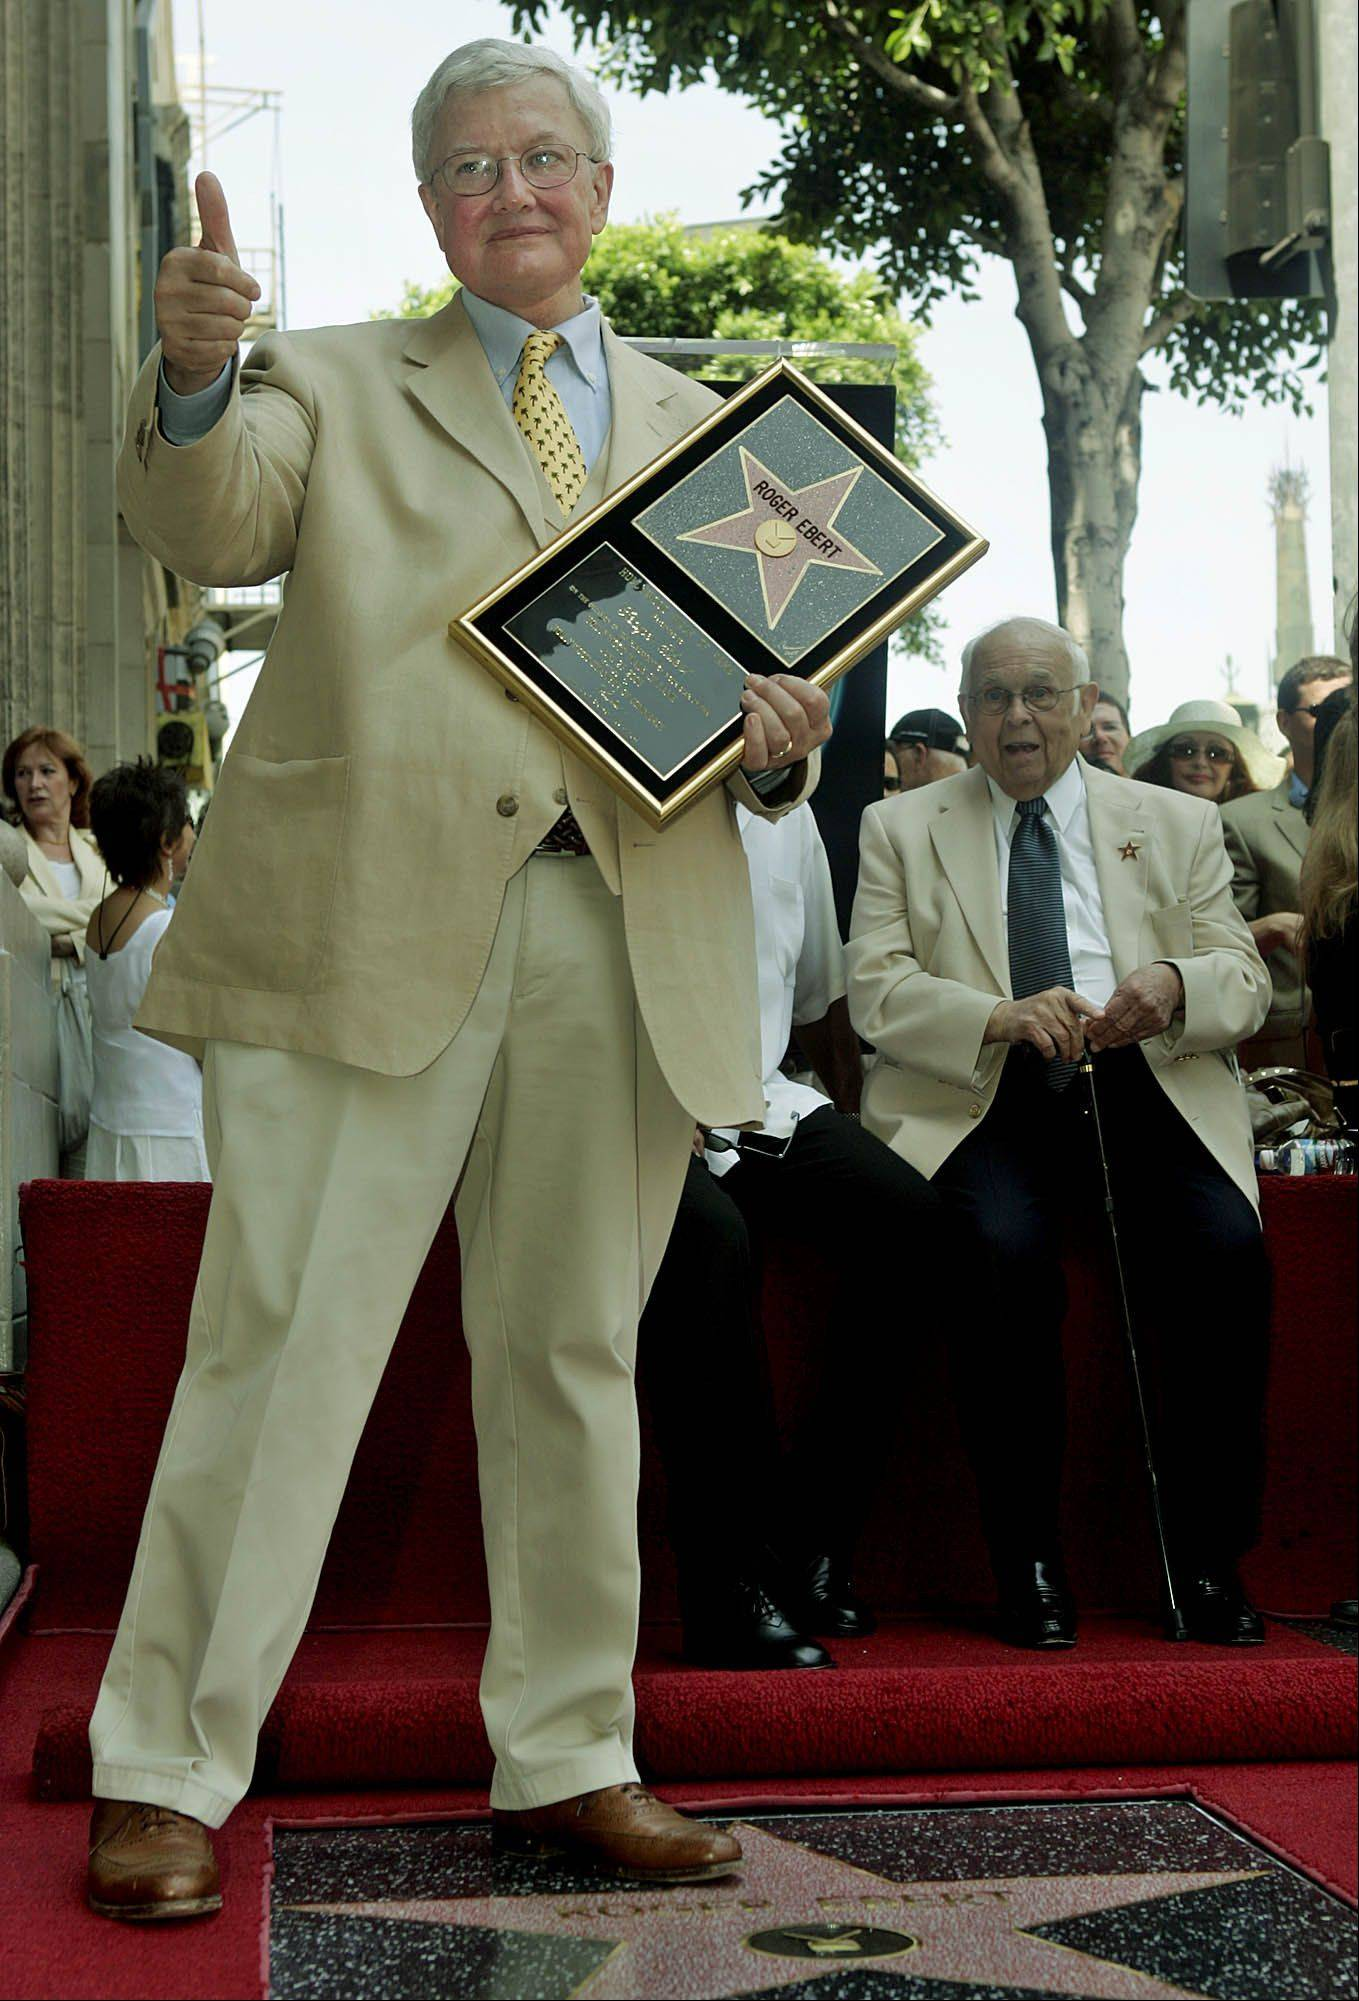 Film critic Roger Ebert poses for photographers Thursday, June 23, 2005, in the Hollywood section of Los Angeles. Ebert was honored Thursday with a star on the Hollywood Walk of Fame.